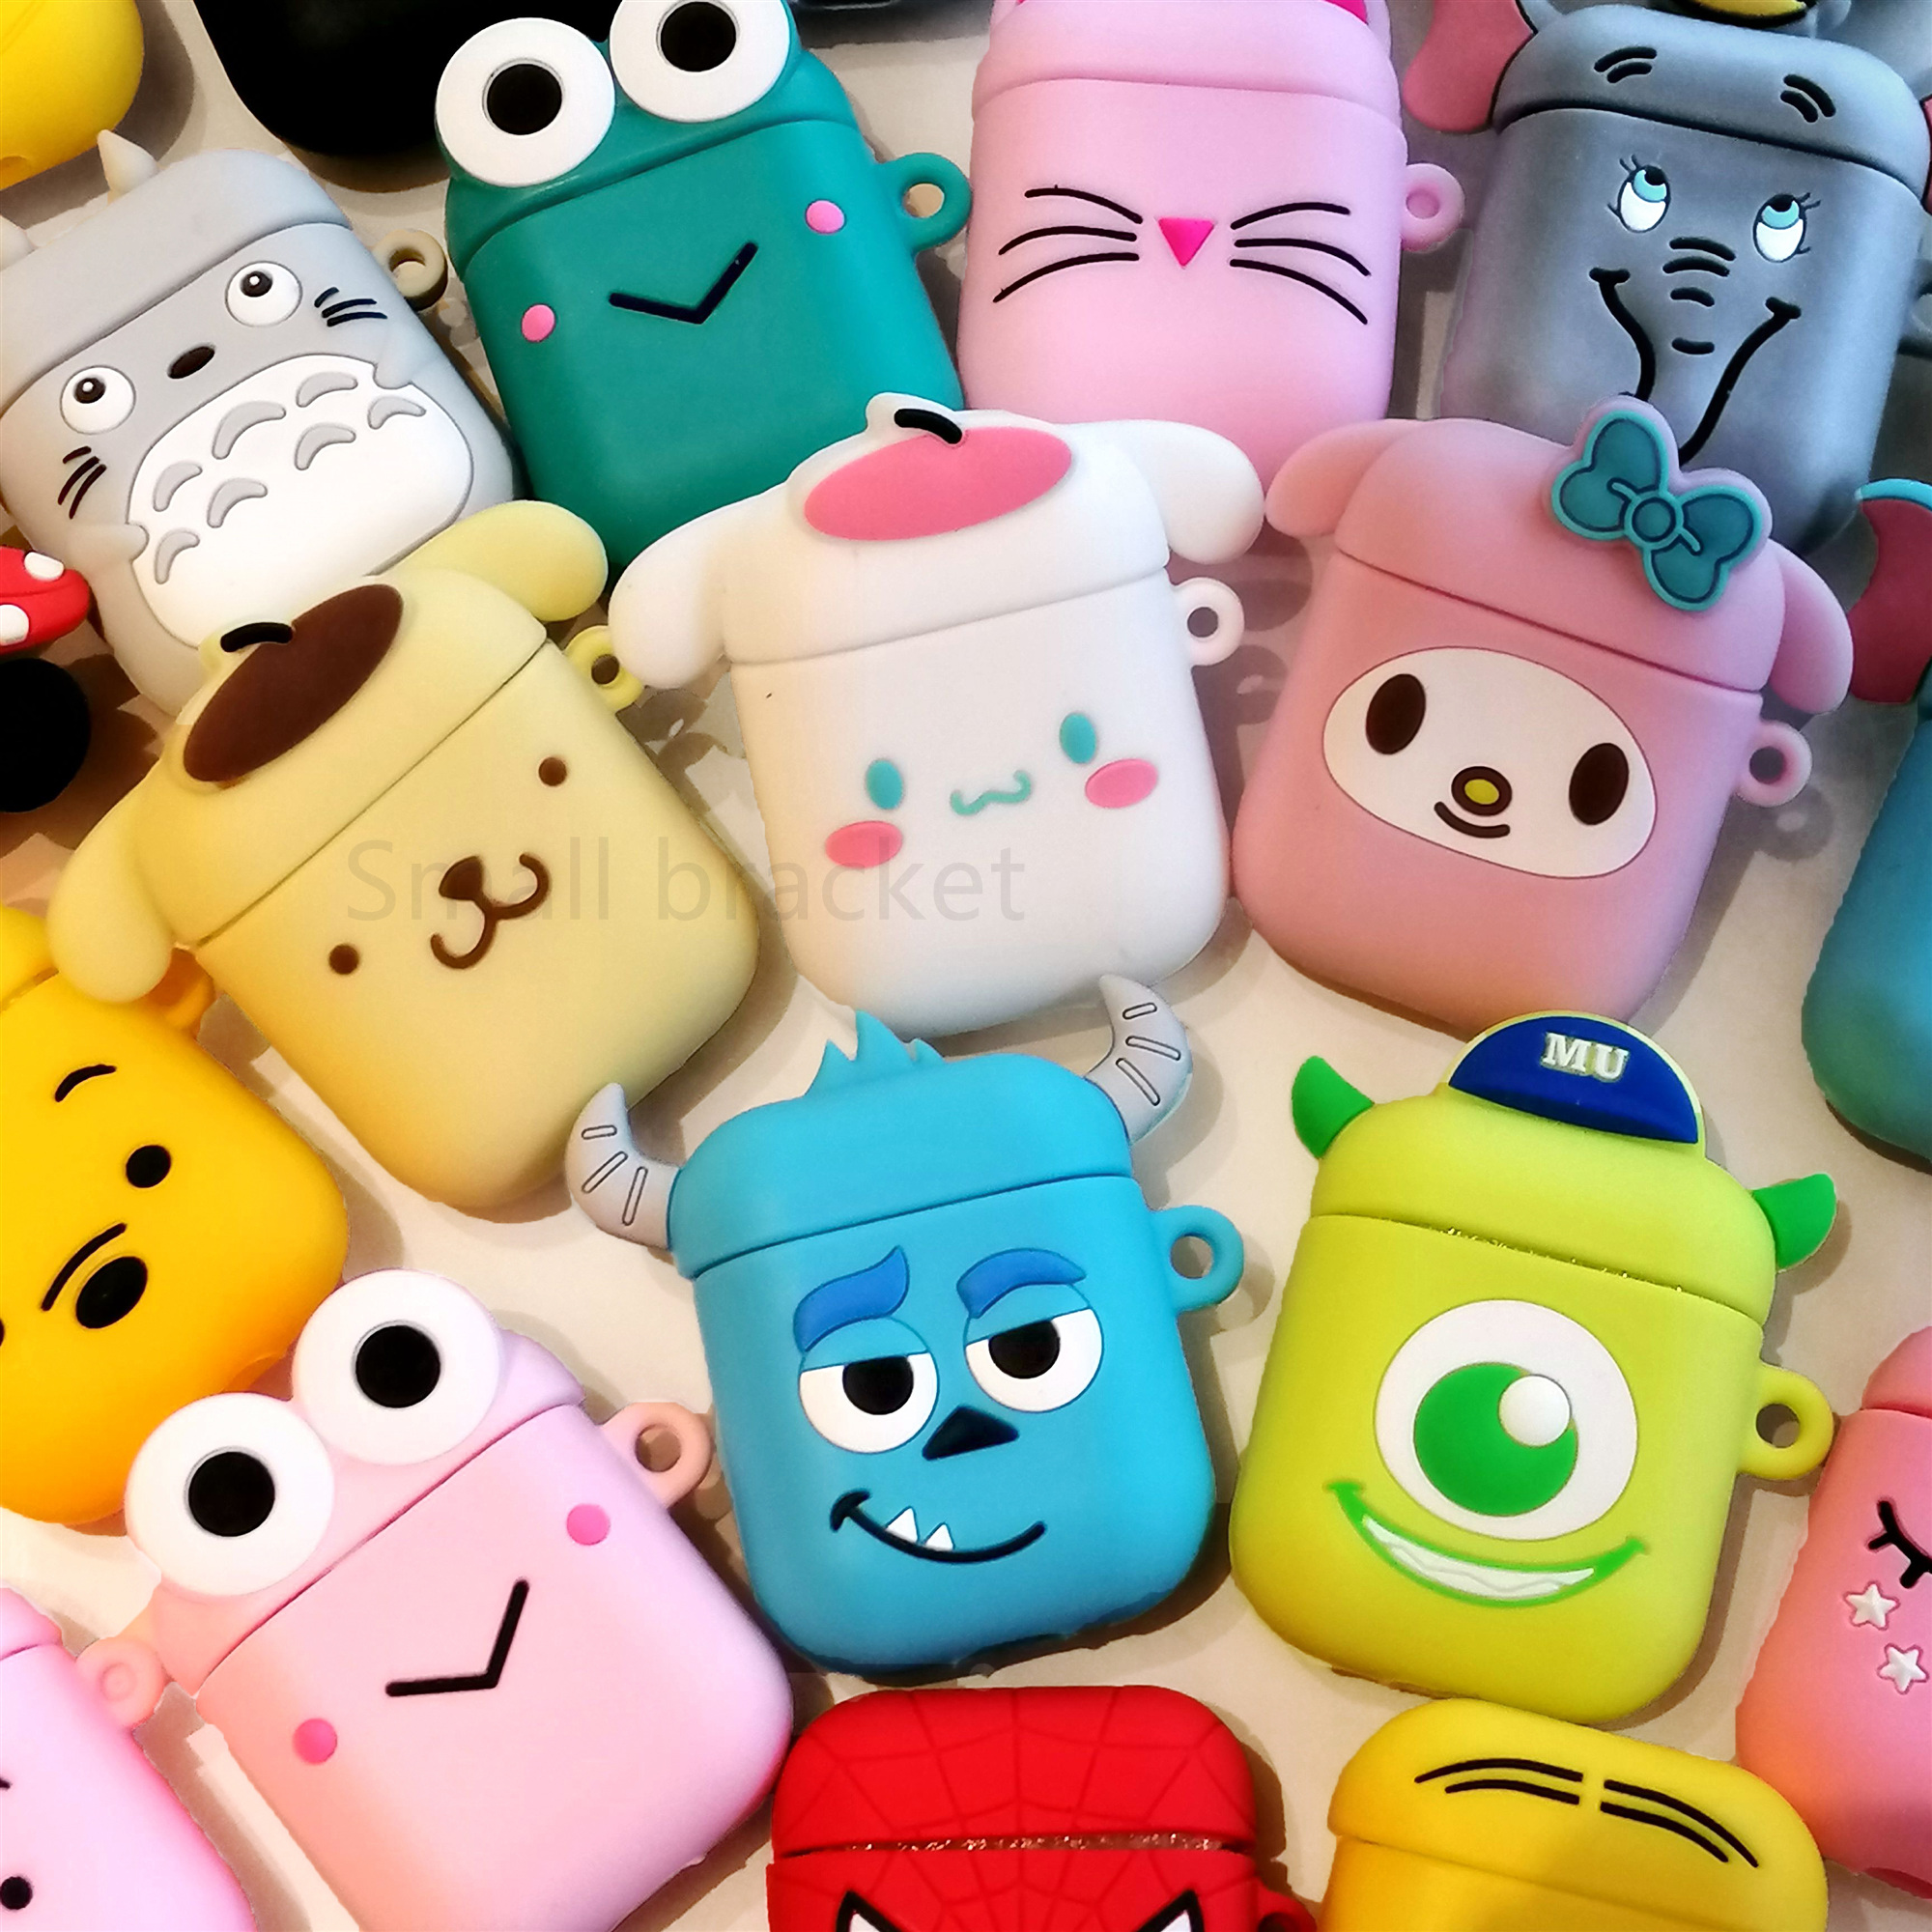 Cute Cartoon Wireless Case For Apple AirPods Silicone Charging Headphones Cases For Airpods Protective Cover